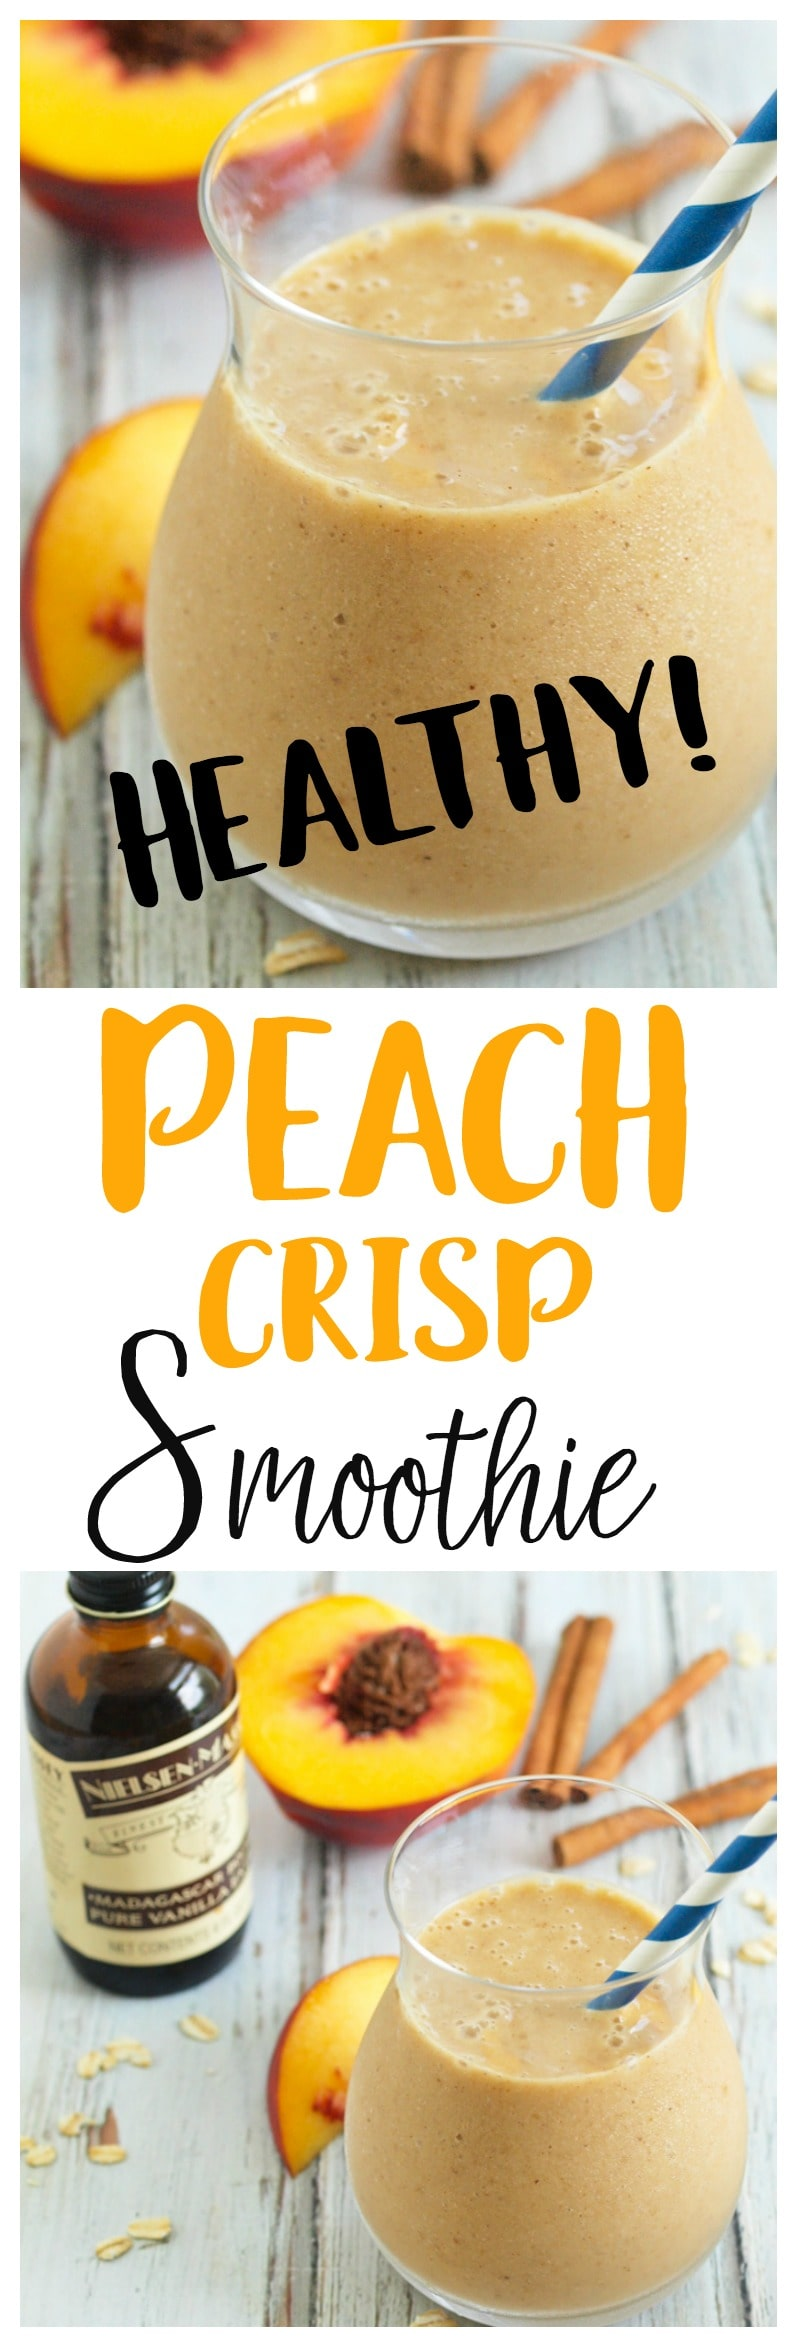 Peach Crisp Smoothie--a healthy smoothie recipe that tastes like dessert! Vegan and gluten-free